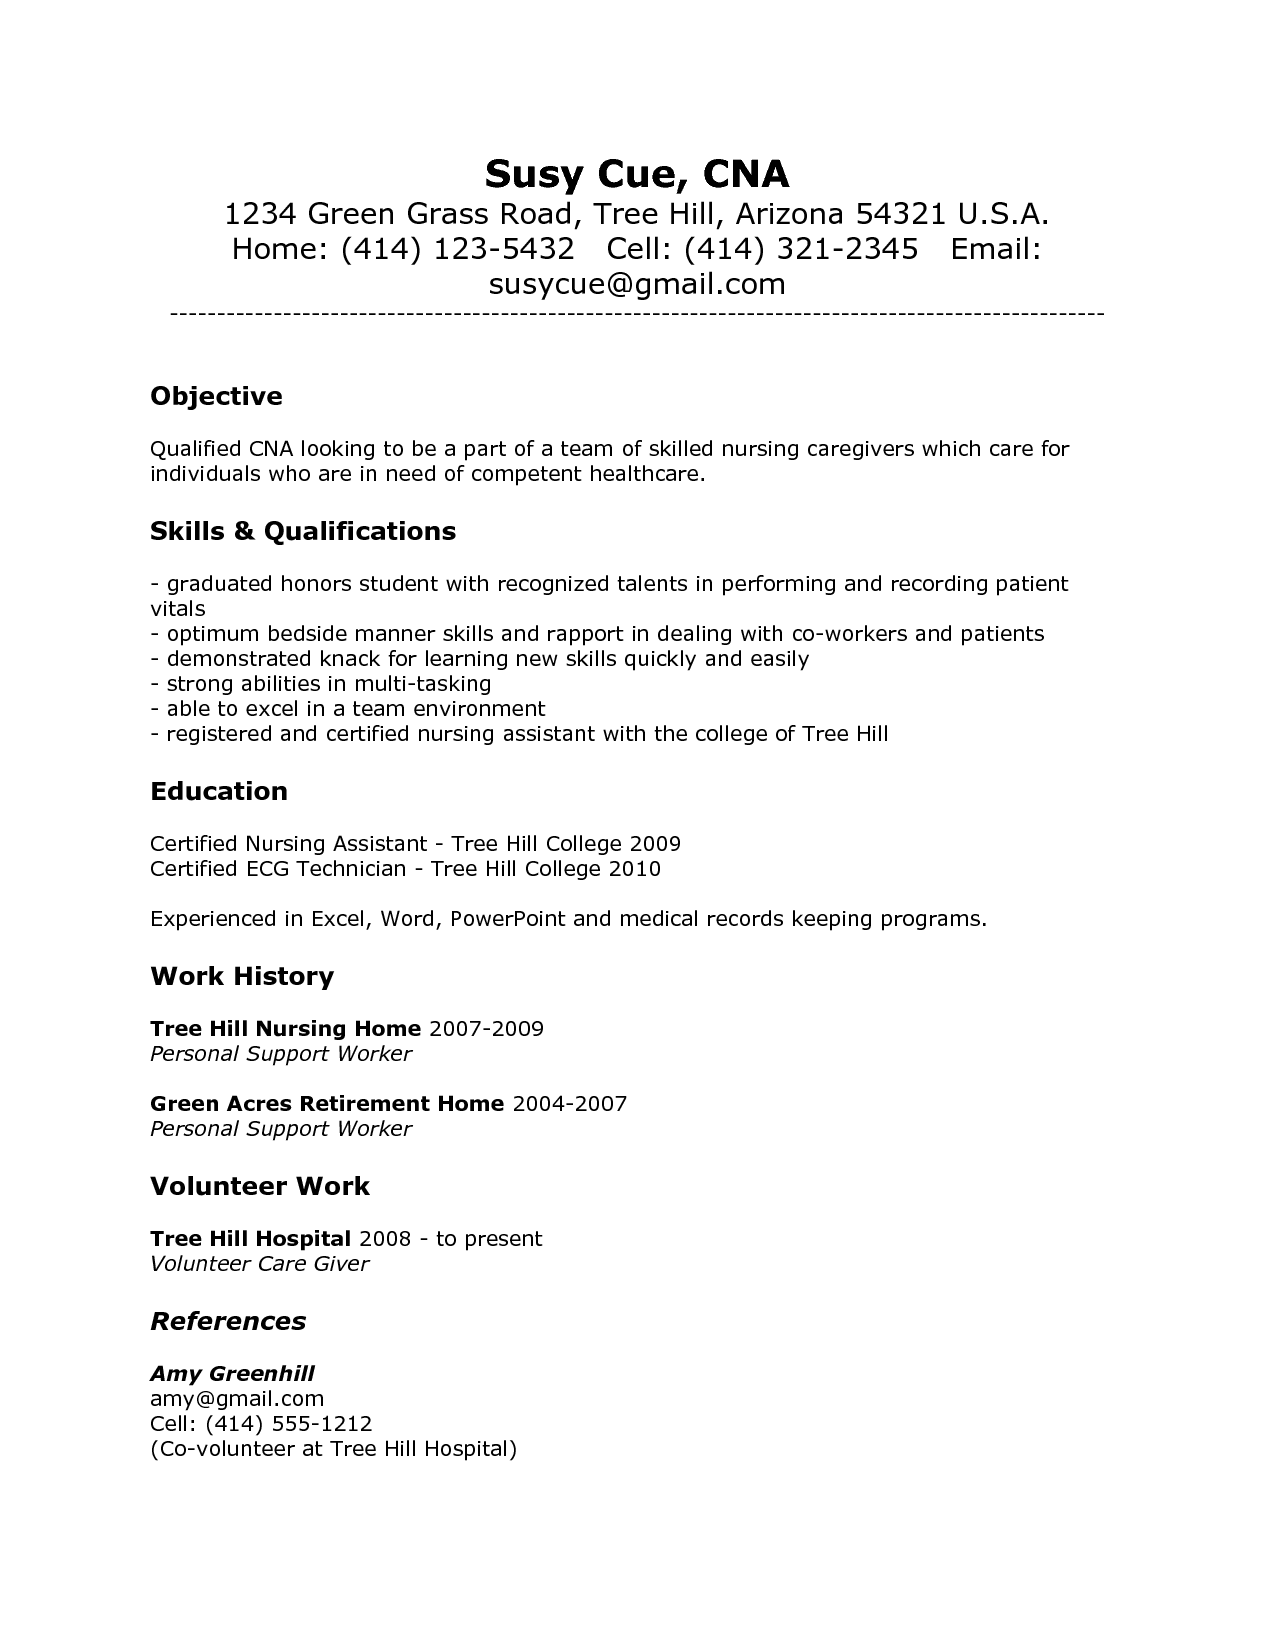 How To Write A Cna Resume Resume Examples Cna  Pinterest  Resume Examples And Resume Objective